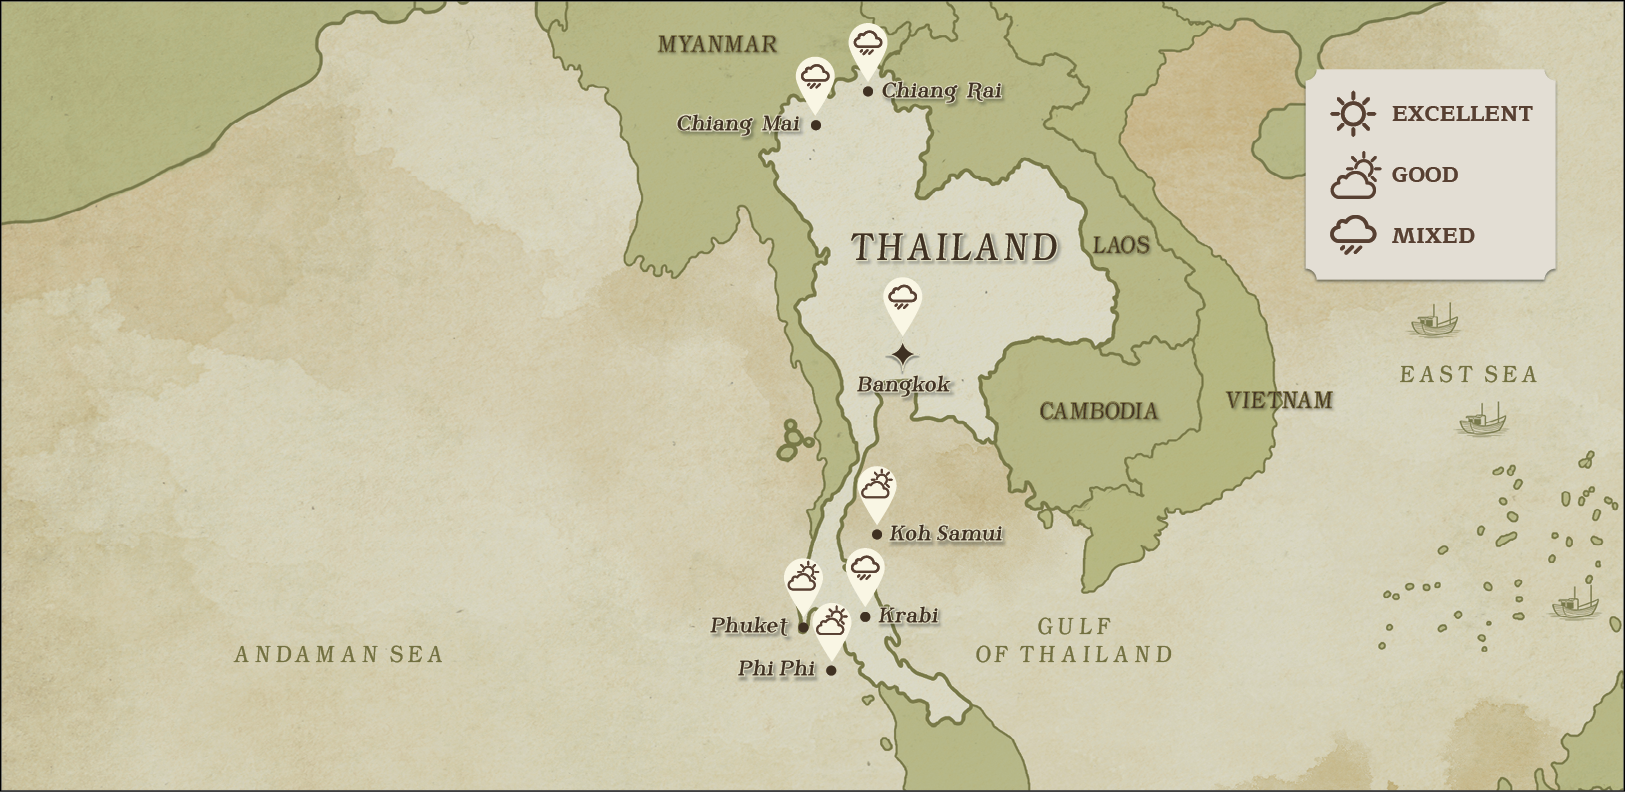 THAILAND WEATHER MAP June